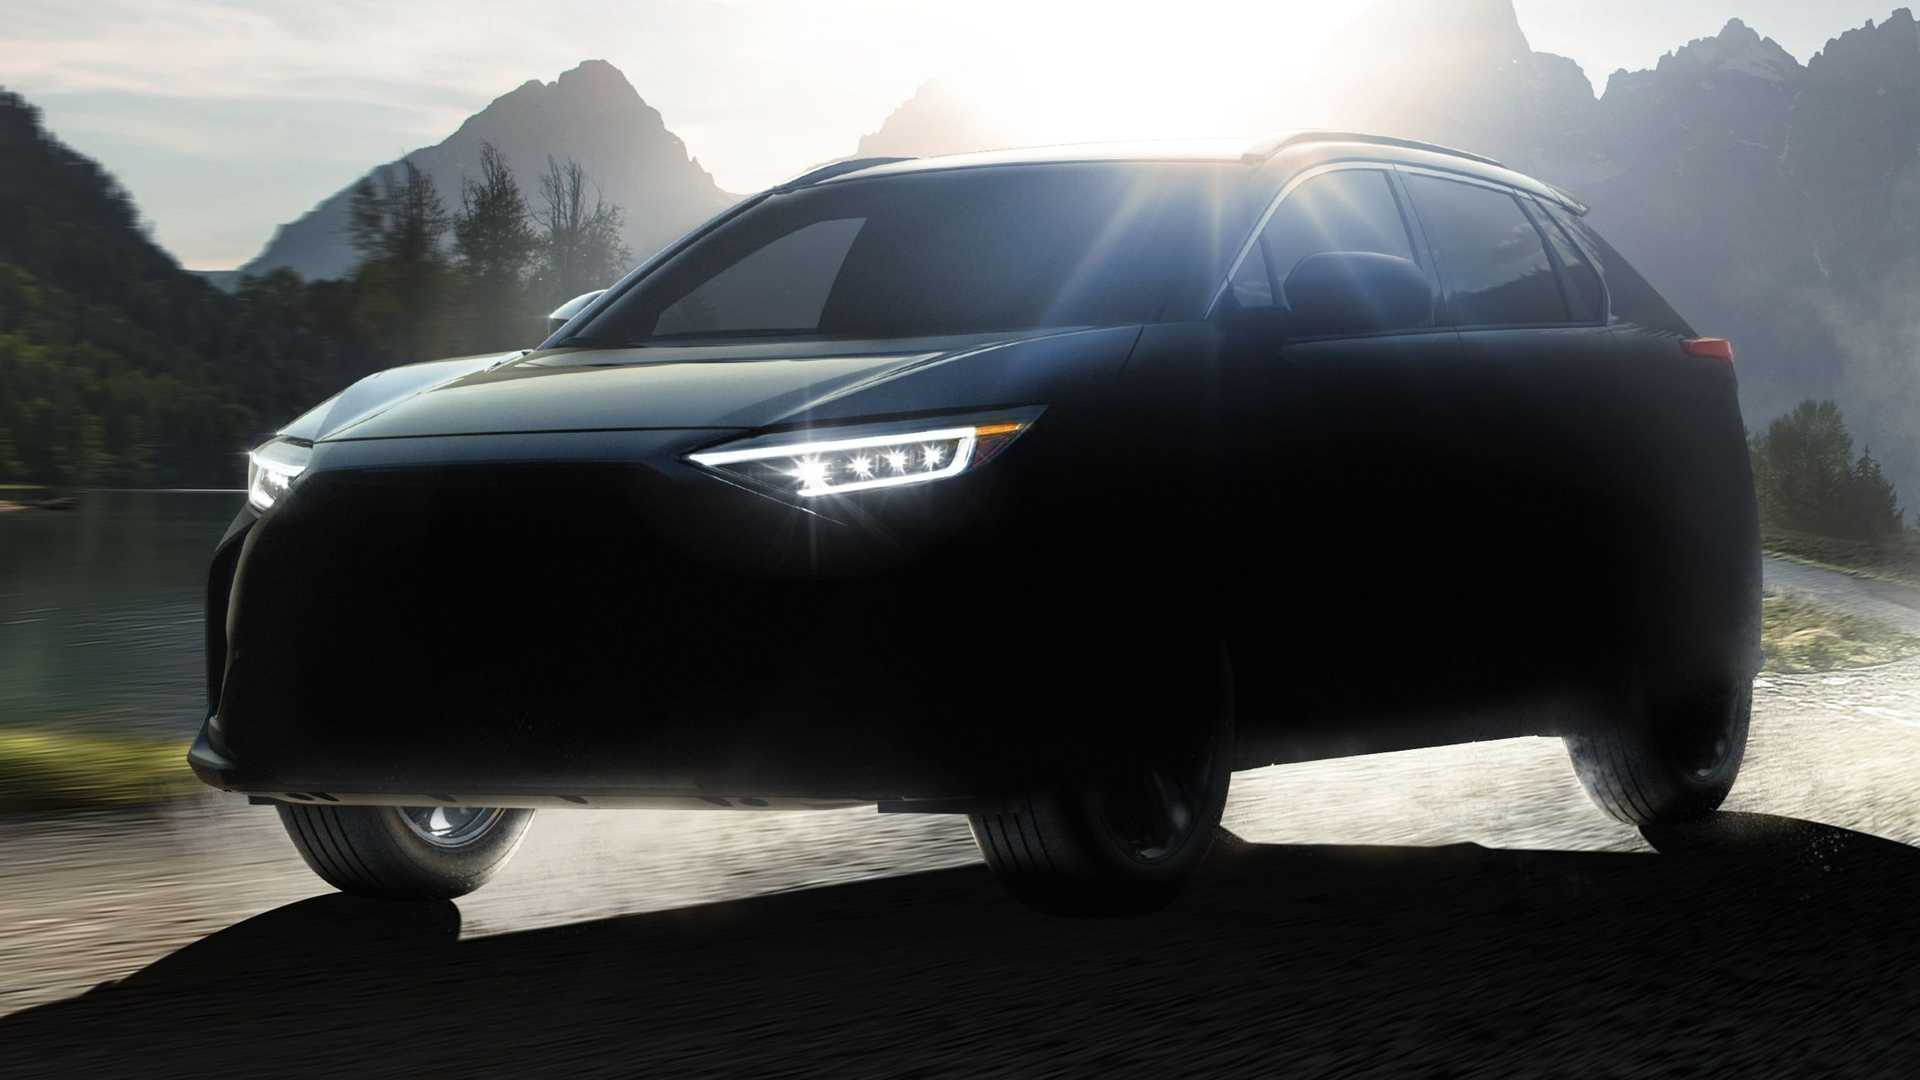 Subaru Solterra Teased As Electric SUV Co-Developed With Toyota - Motor1